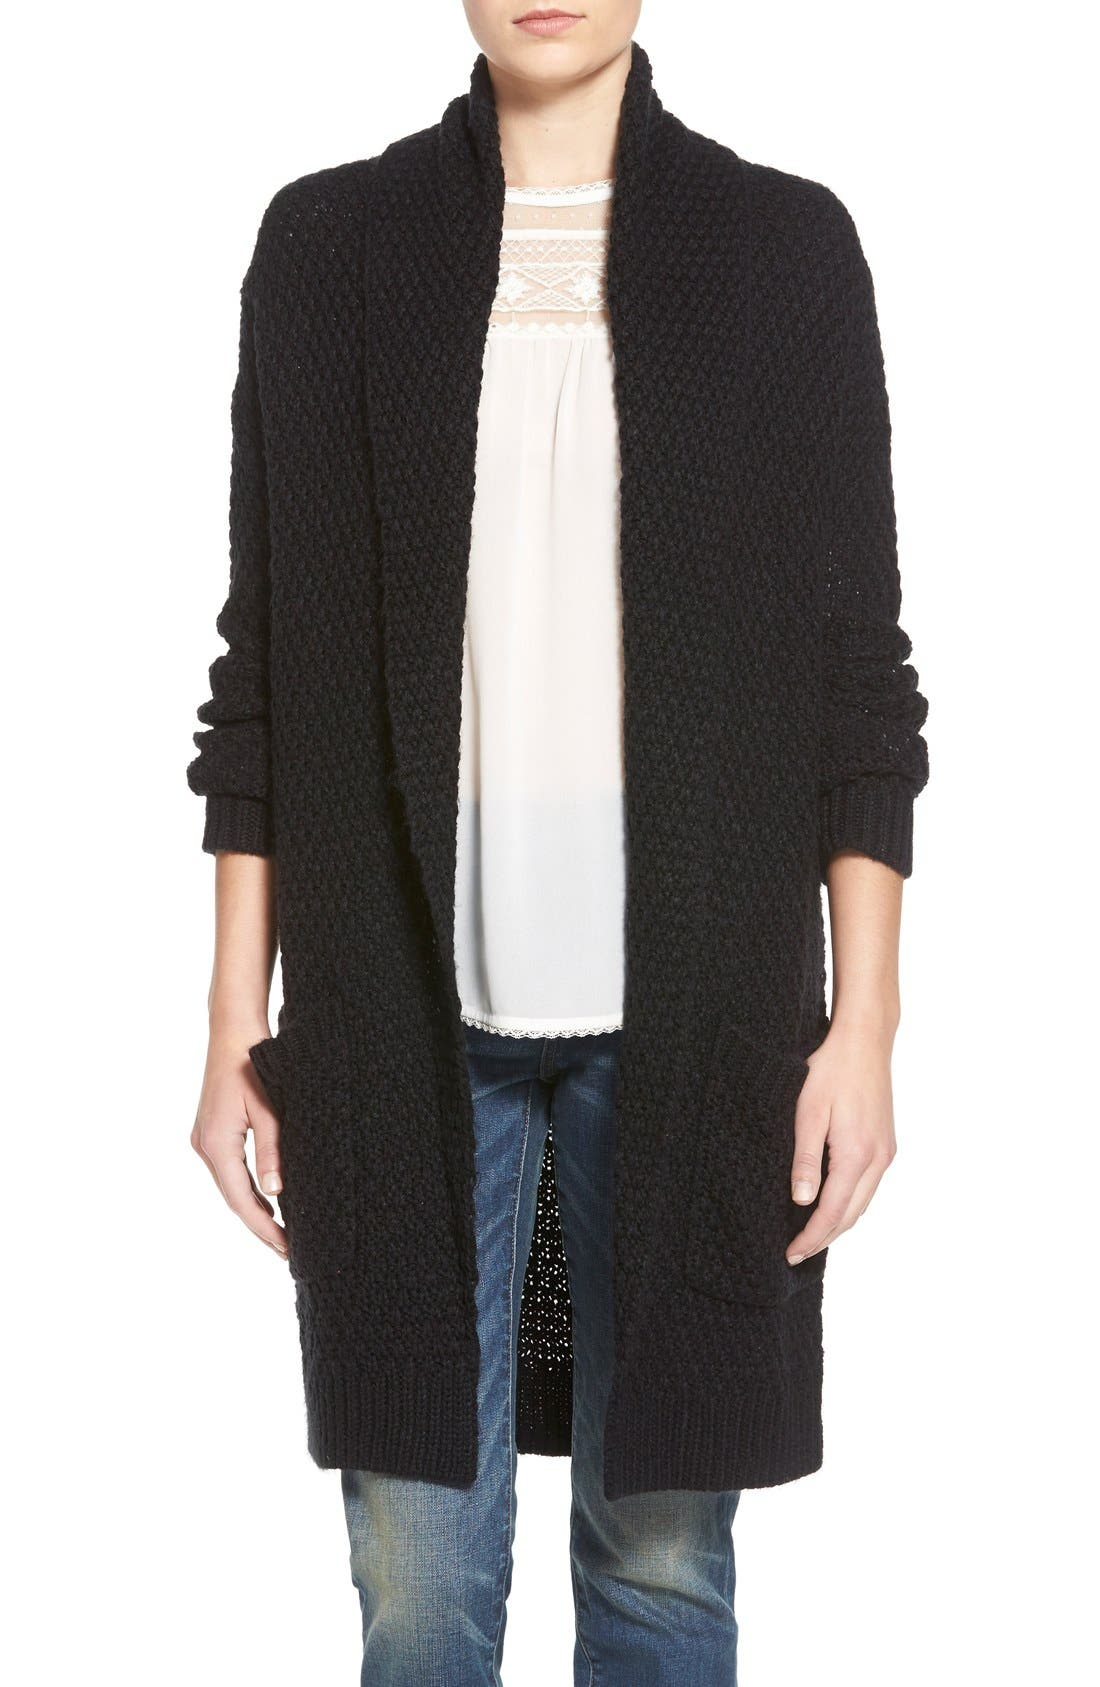 HINGE Marled Long Open Front Cardigan, Main, color, 001